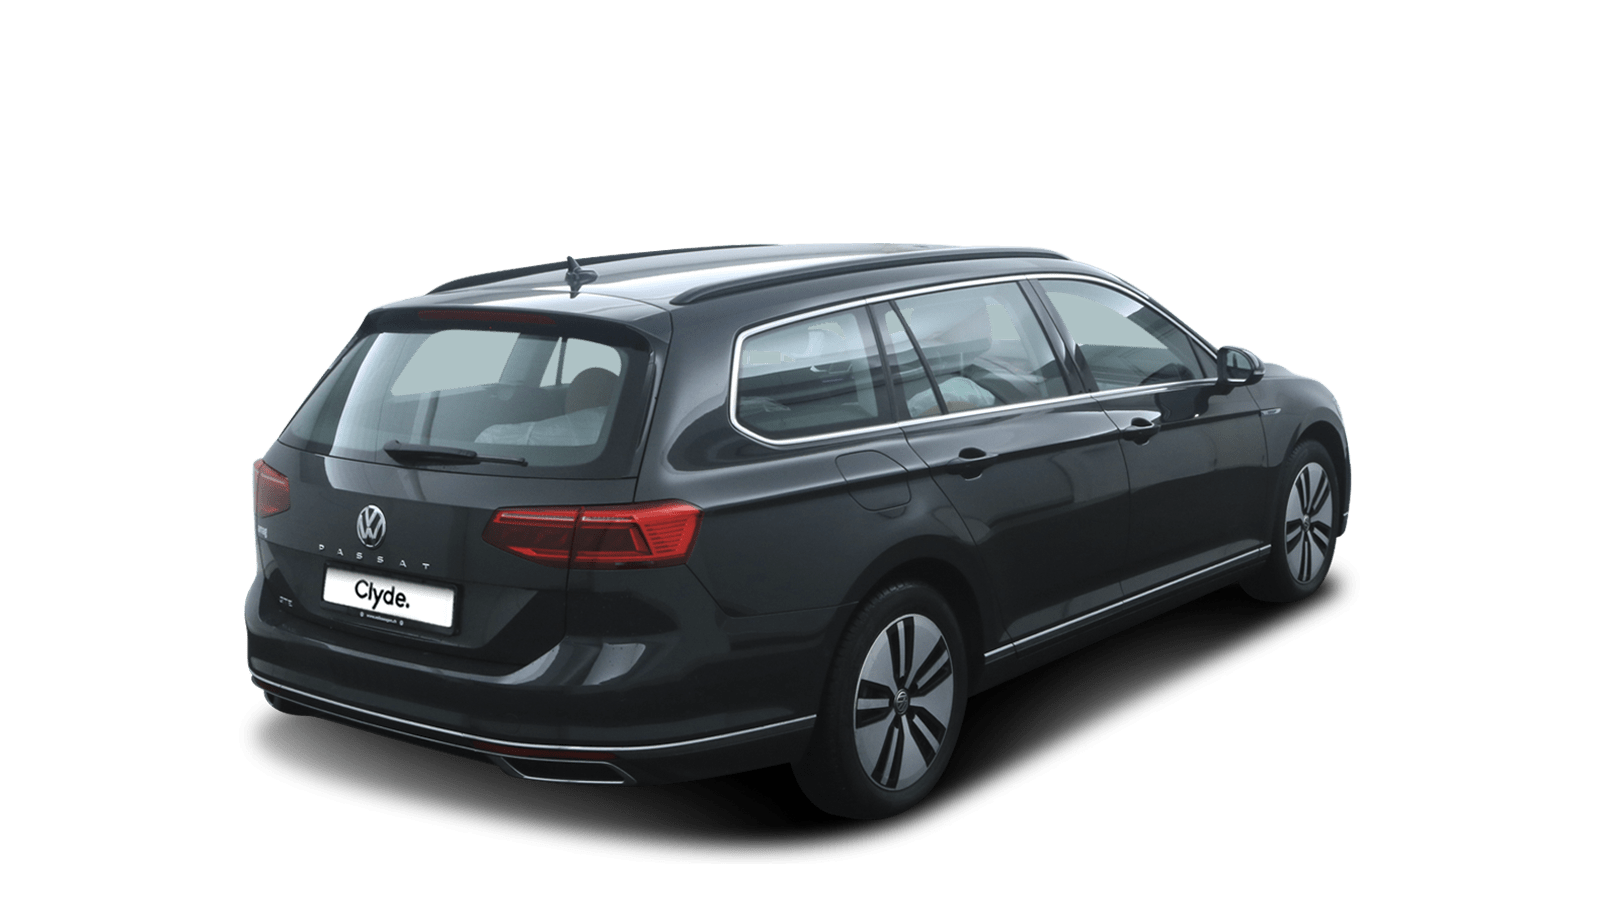 VW Passat Variant GTE Grey back - Clyde car subscription